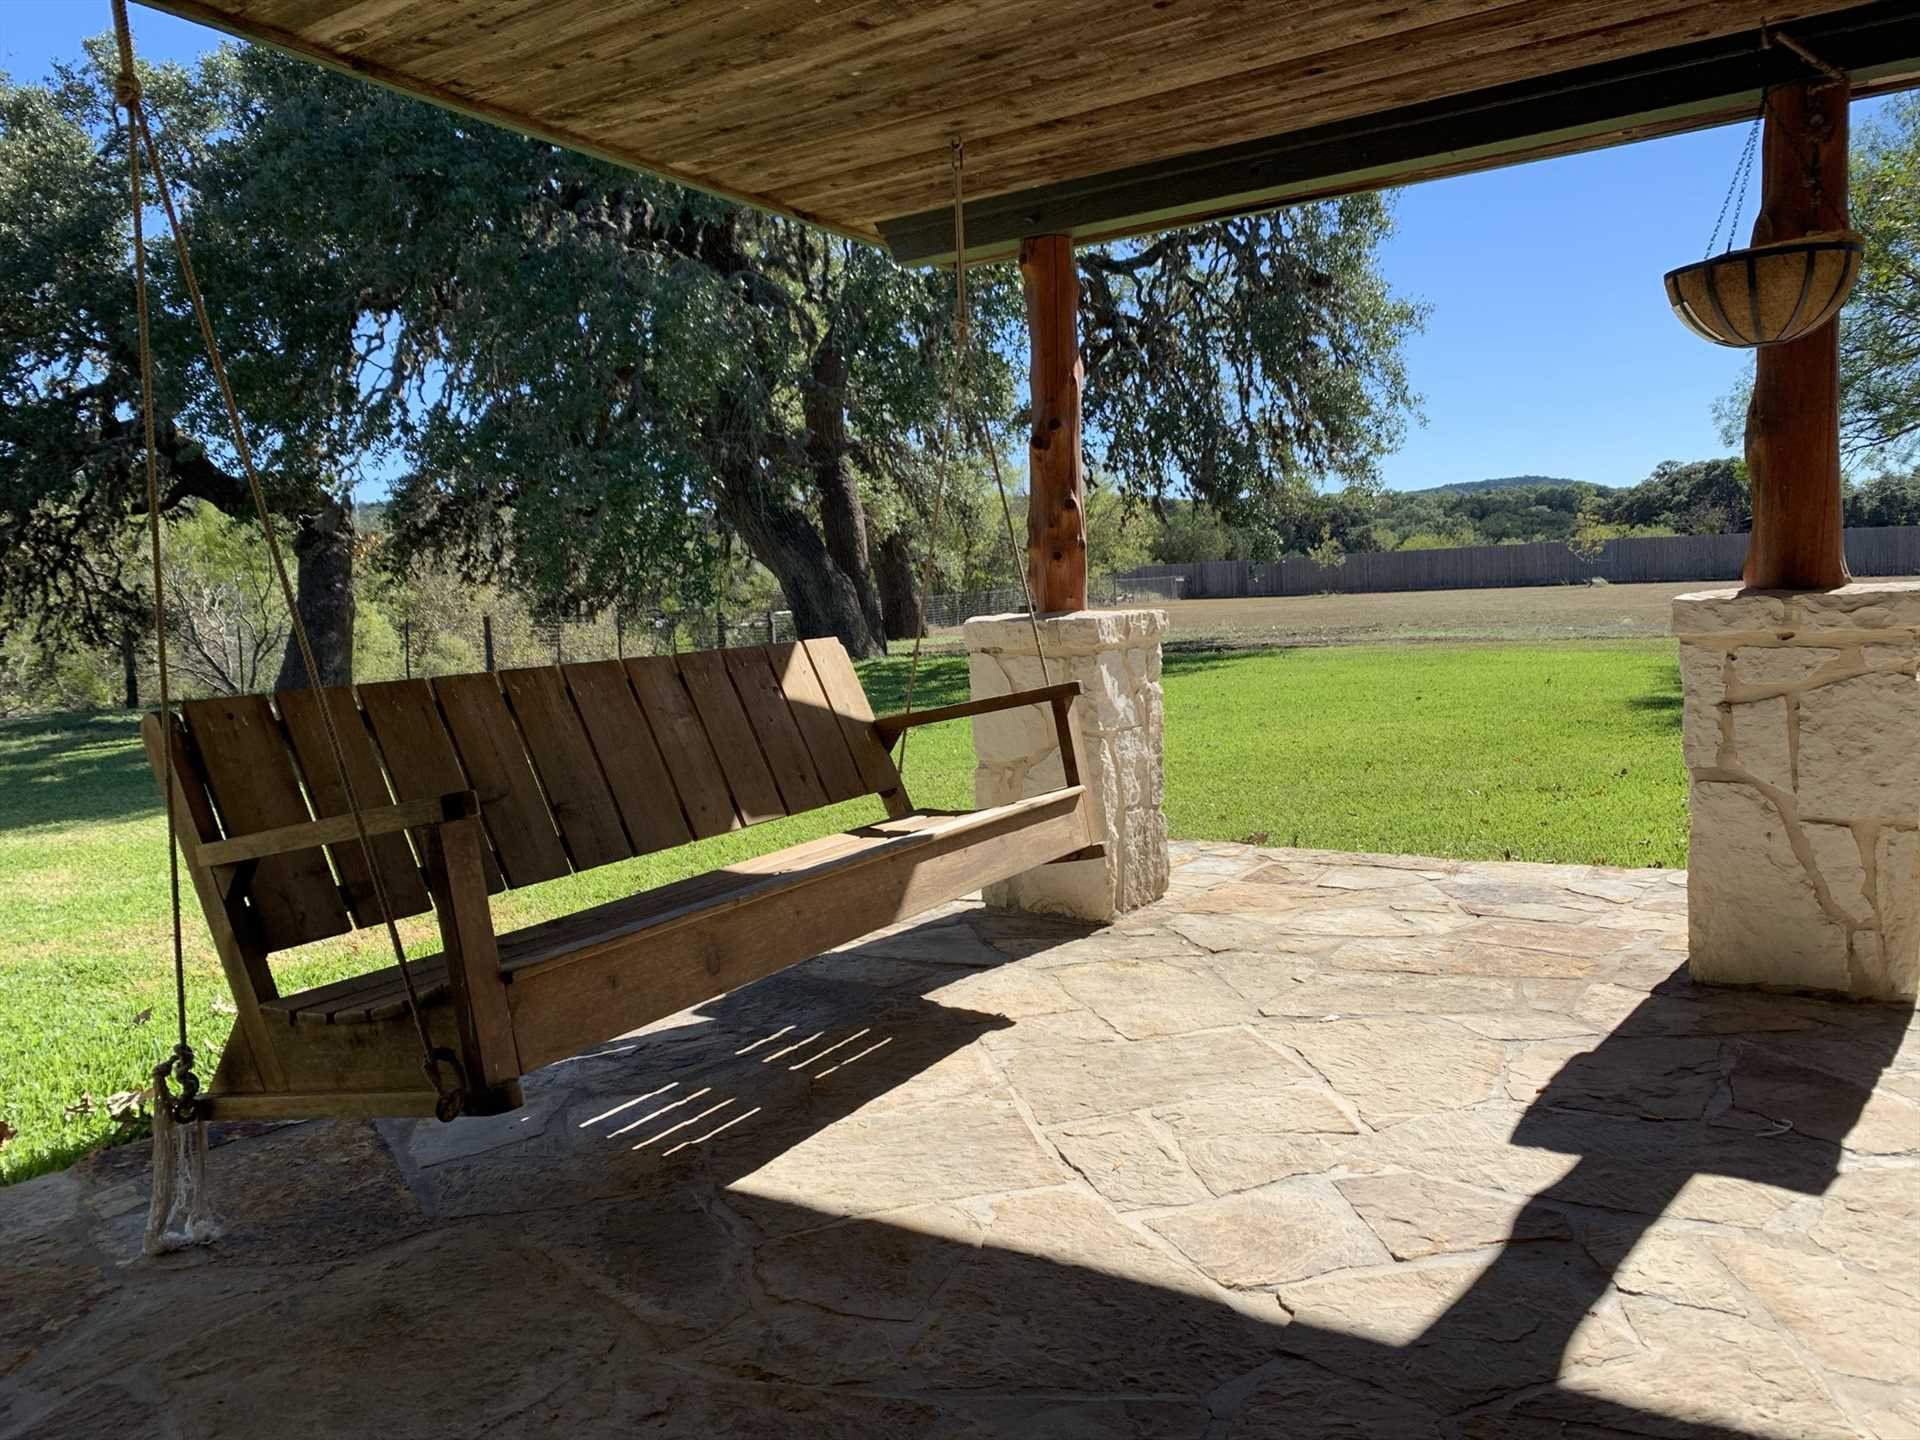 Take a peaceful swing on the shaded porch as the soothing Hill Country breezes waft over you.